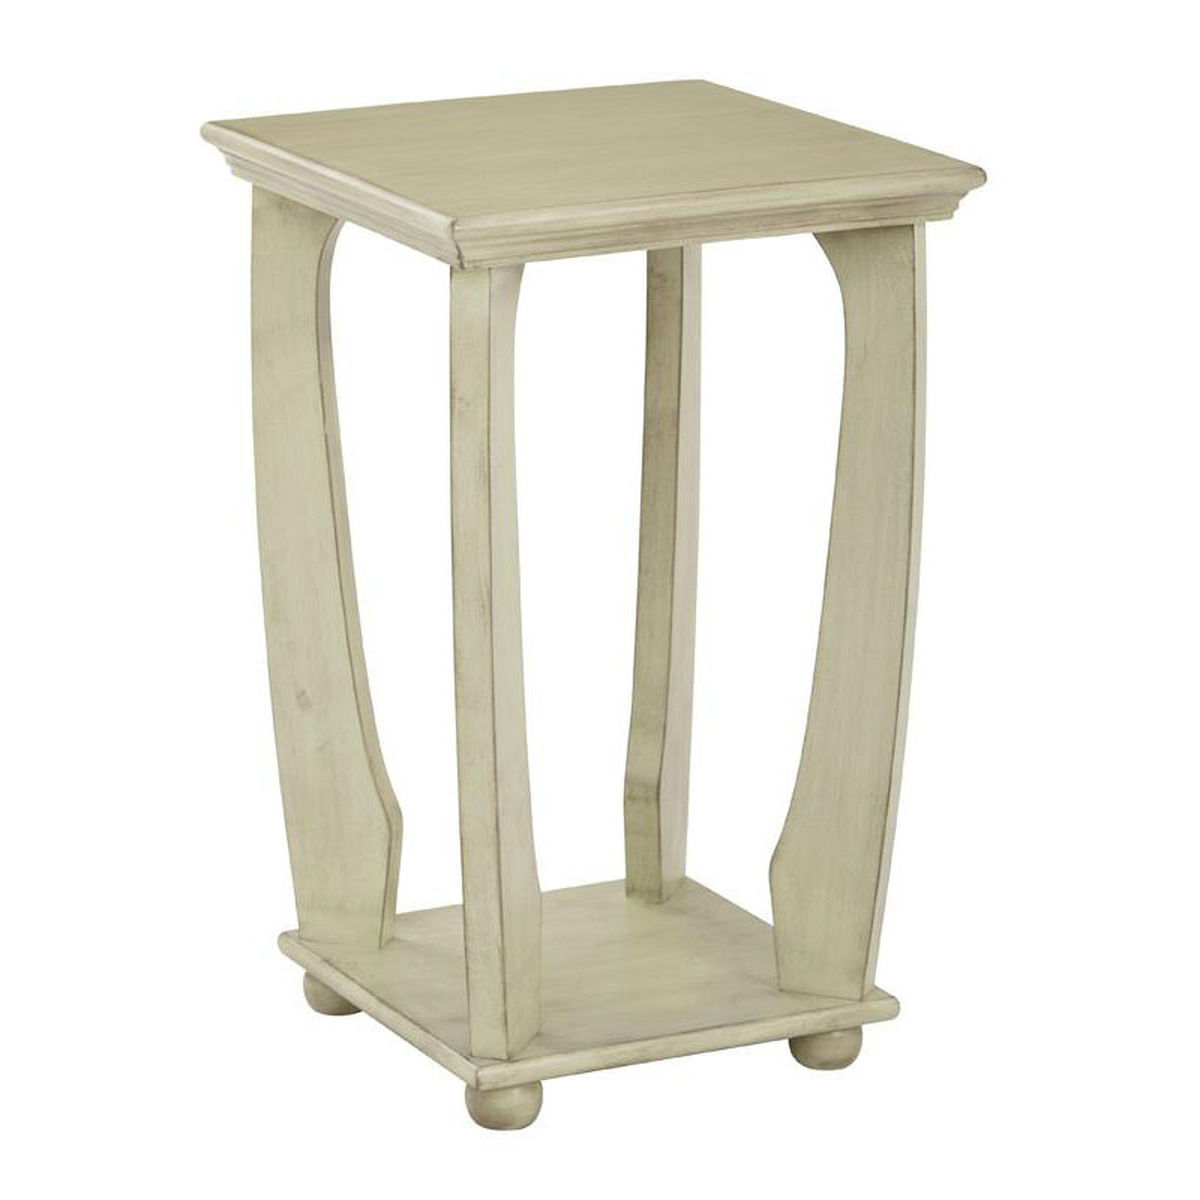 mila square accent table bizchair office star products main our osp designs wood antique celadon now mainstays coffee hairpin bedside high end lighting marble and side oval dining